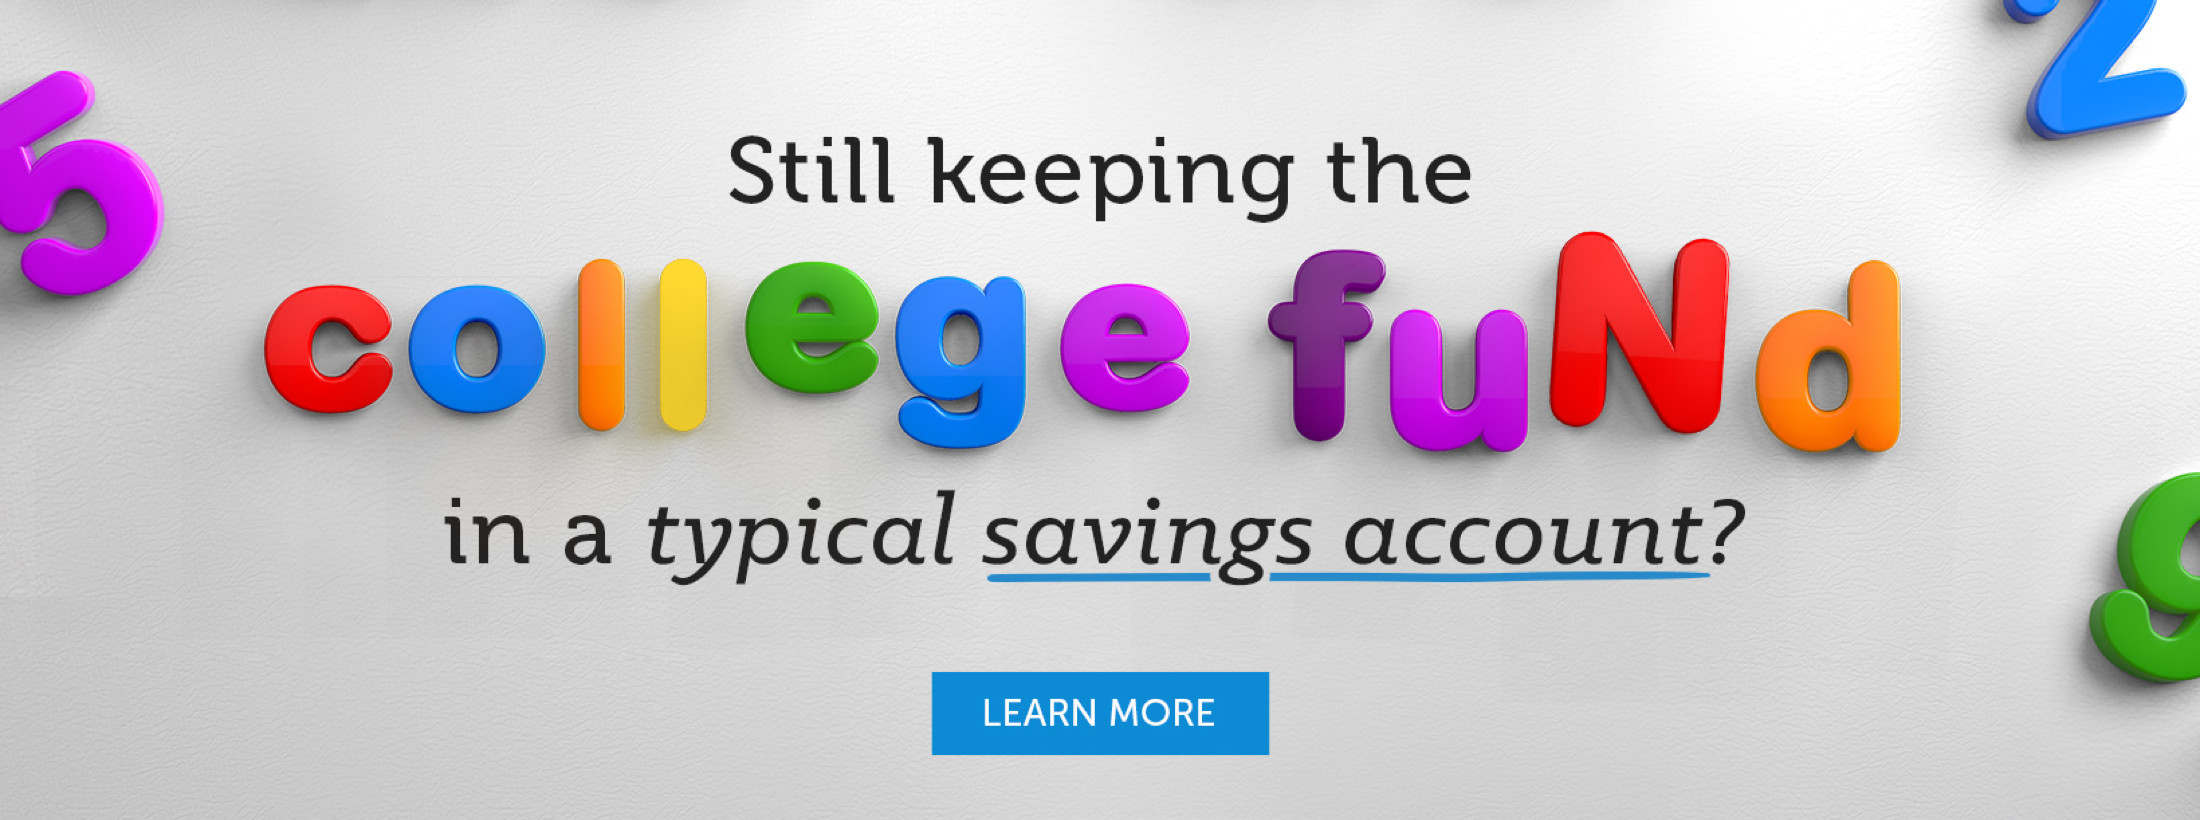 banner-college-fund-in-typical-savings-account-m